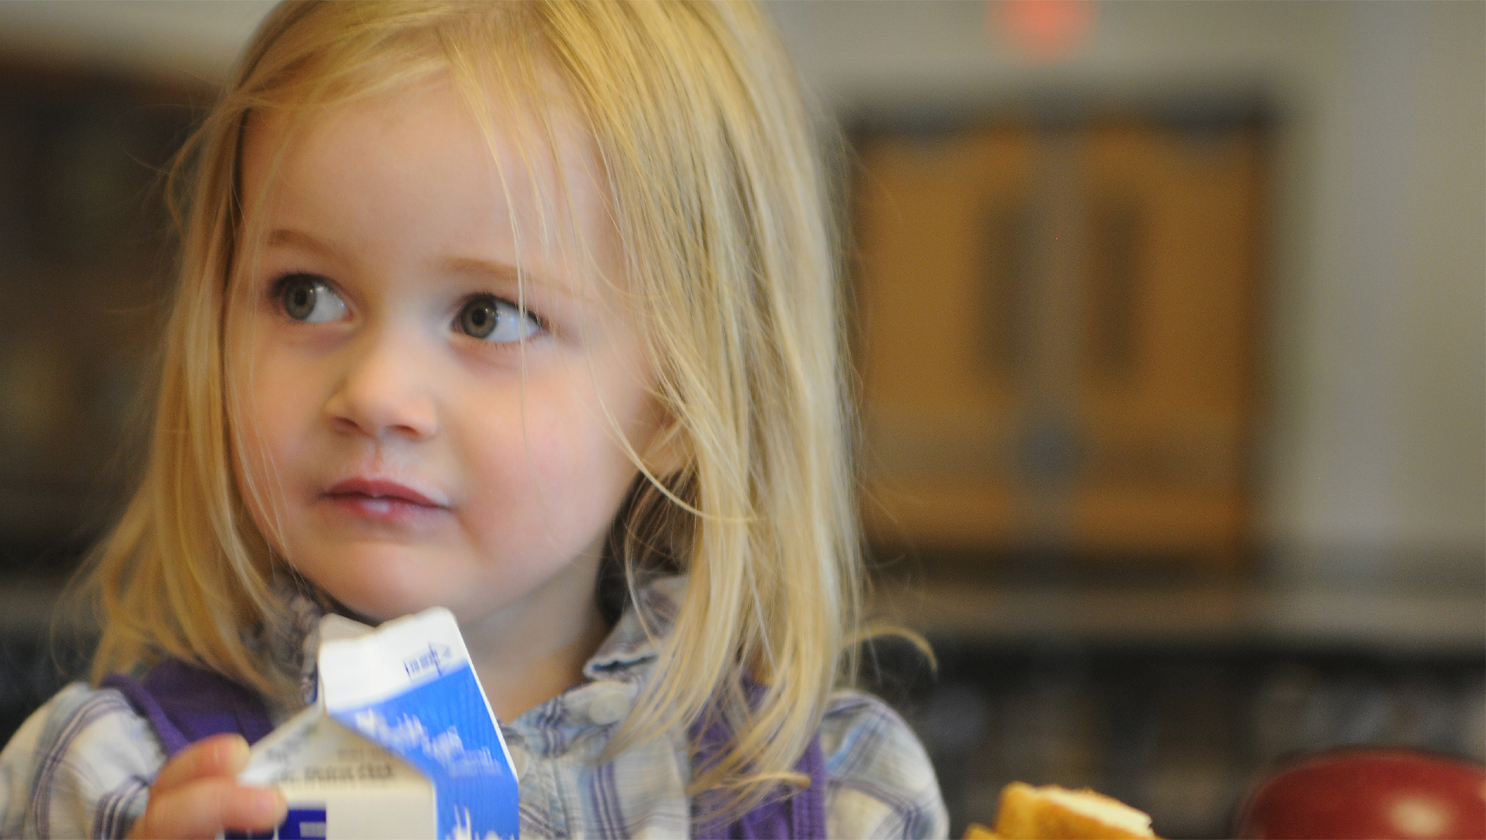 Congress to hear discussion on Child Nutrition Act